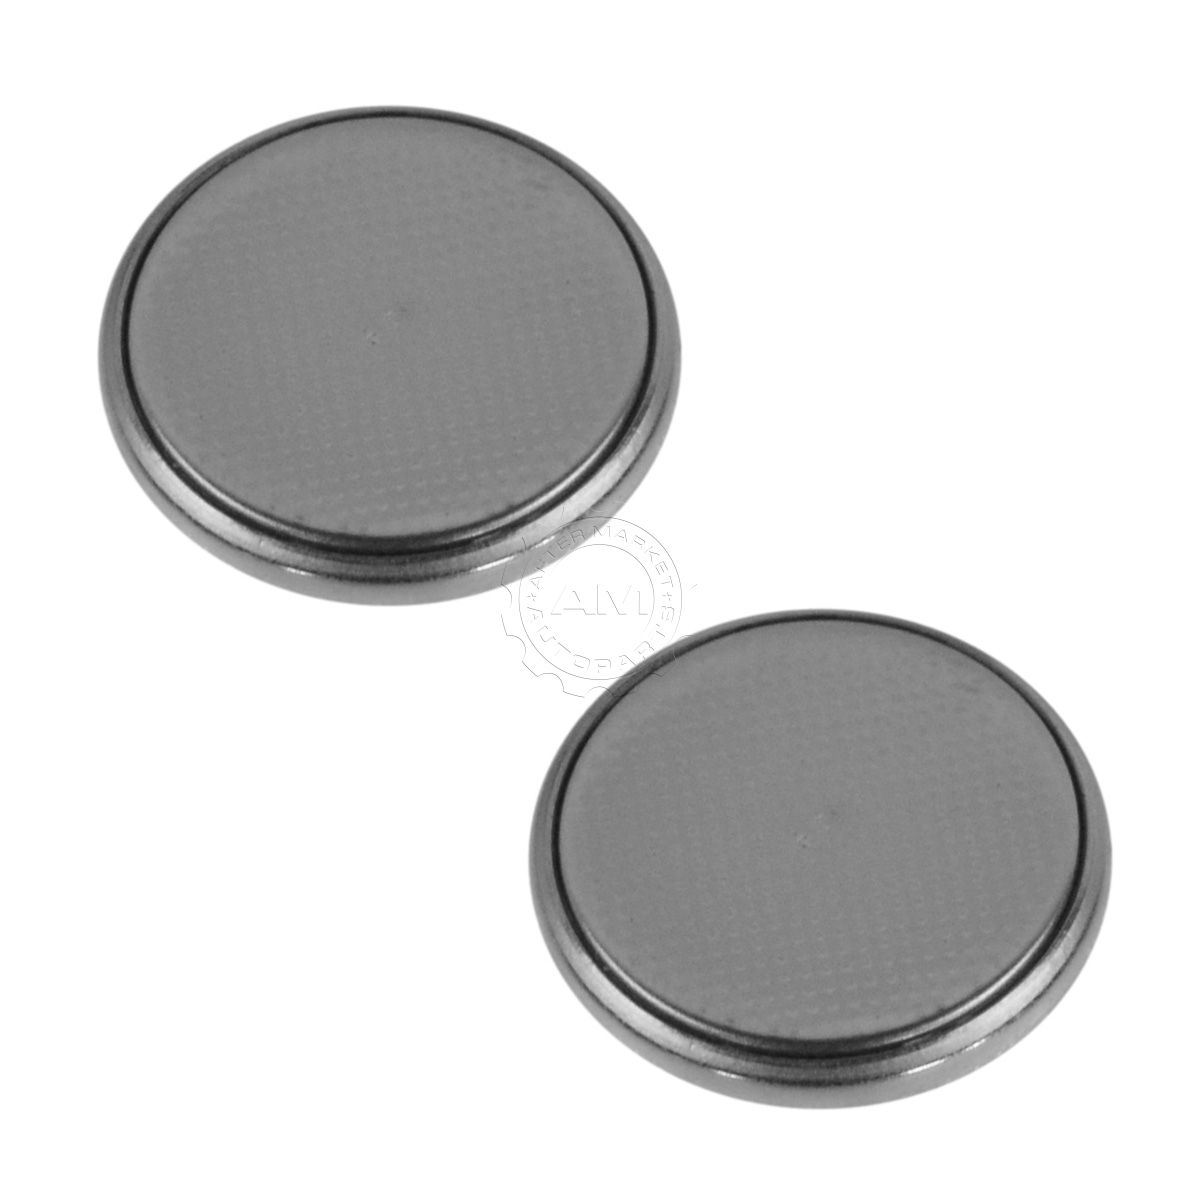 hight resolution of oem keyless remote key fob battery pair cr2025 for mercedes benz a000828038810